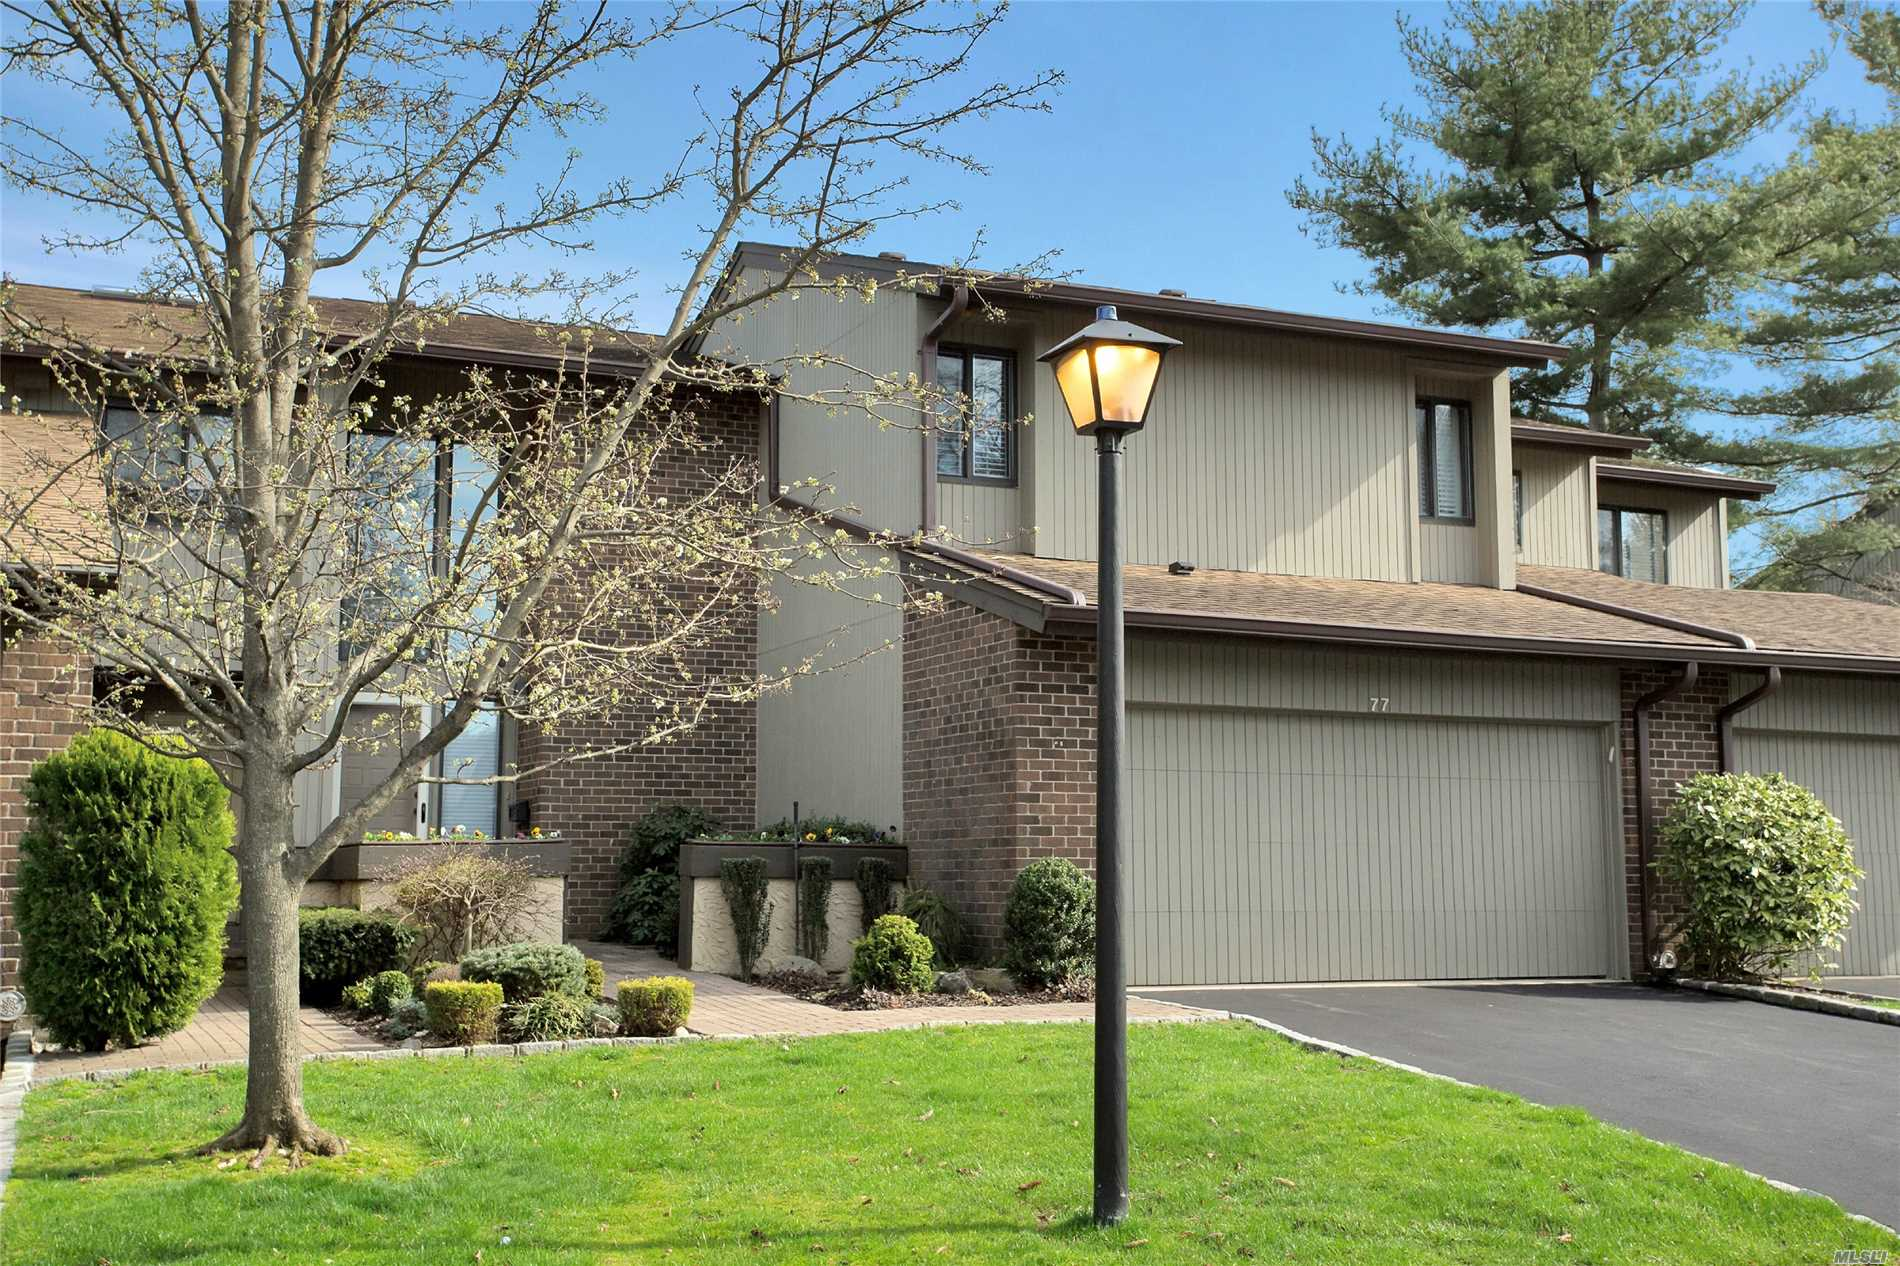 Property for sale at 77 Estate Dr, Jericho,  NY 11753